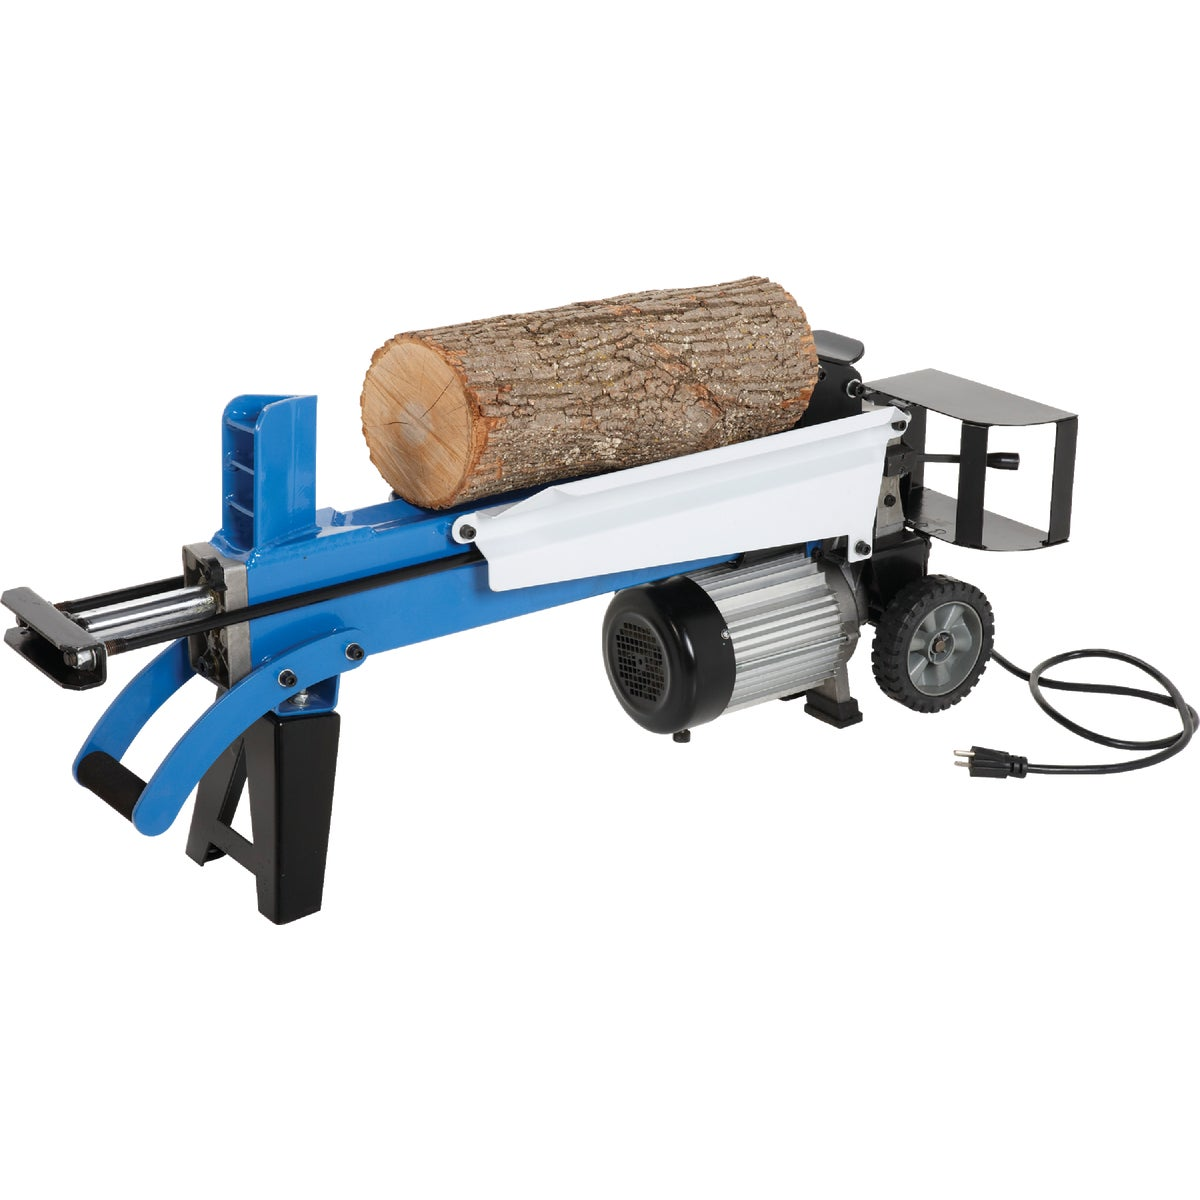 5 TON ELEC LOG SPLITTER